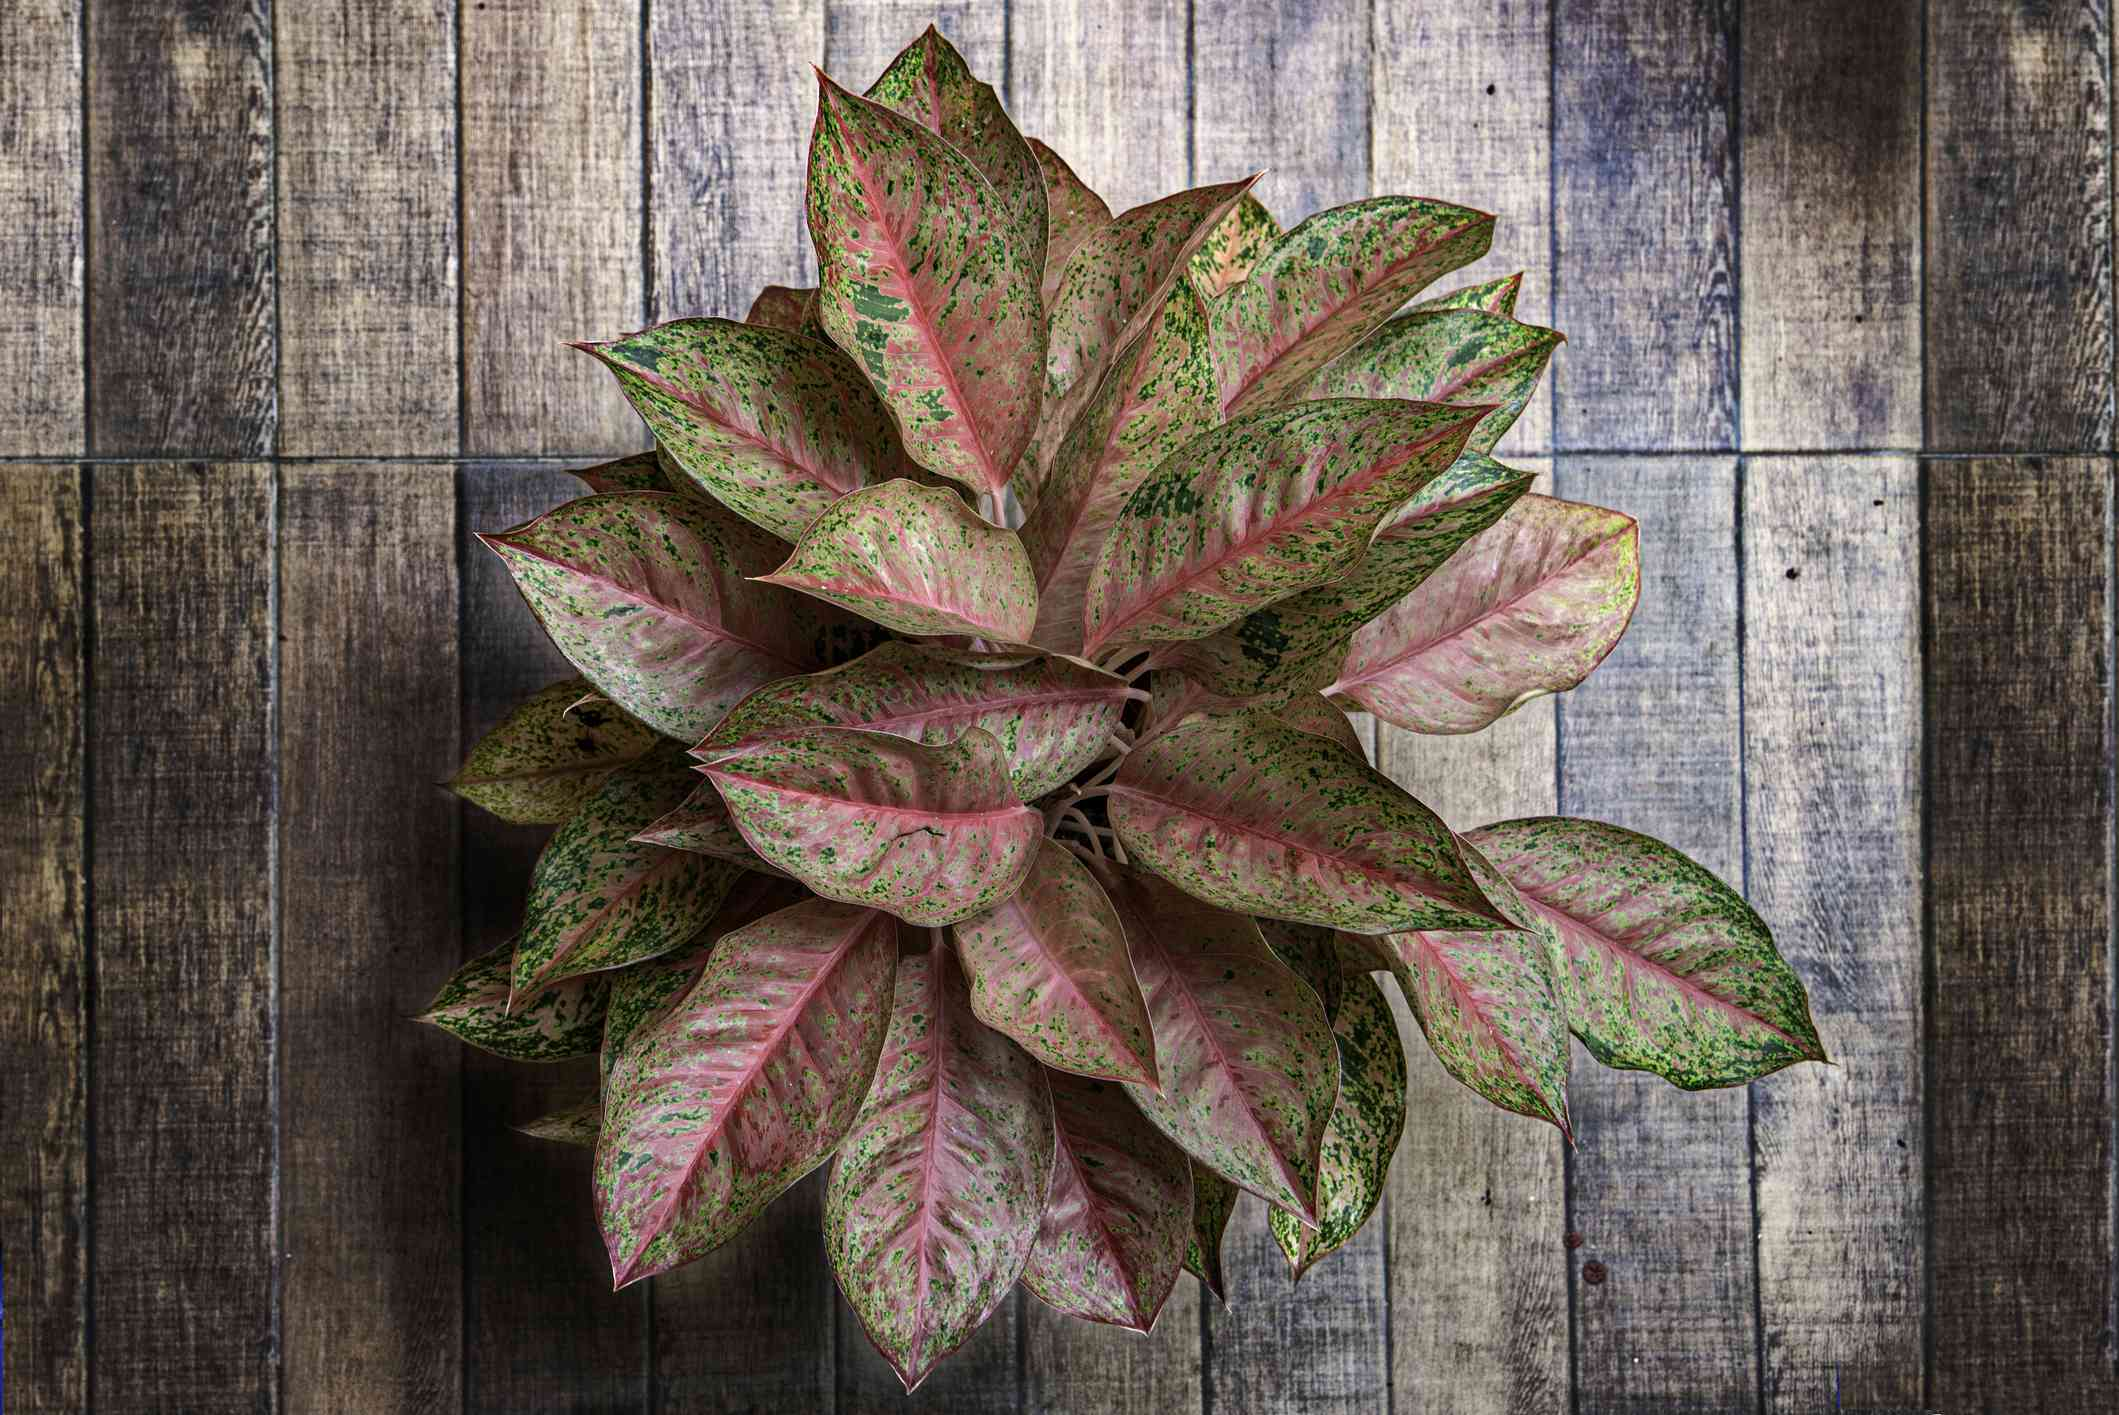 Red peacock aglaonema on a wooden floor